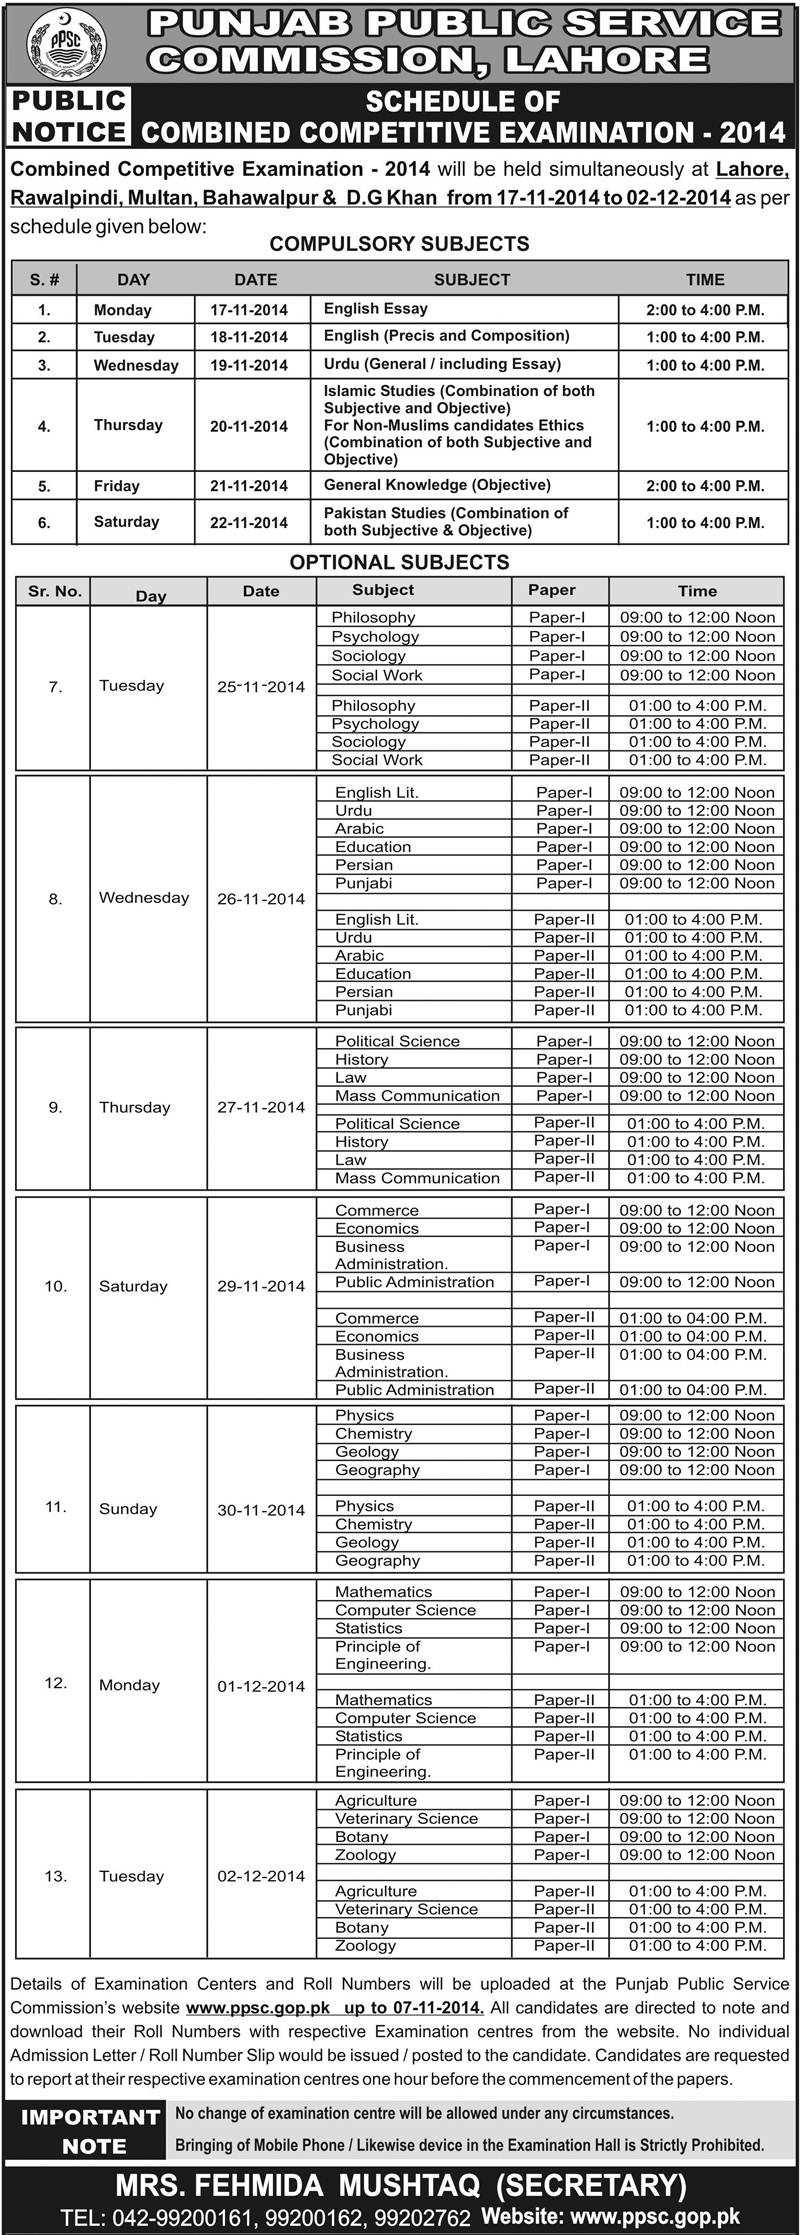 PPSC Combined Competitive Written Exams 2014-15 Date Sheet Schedule Papers Timings